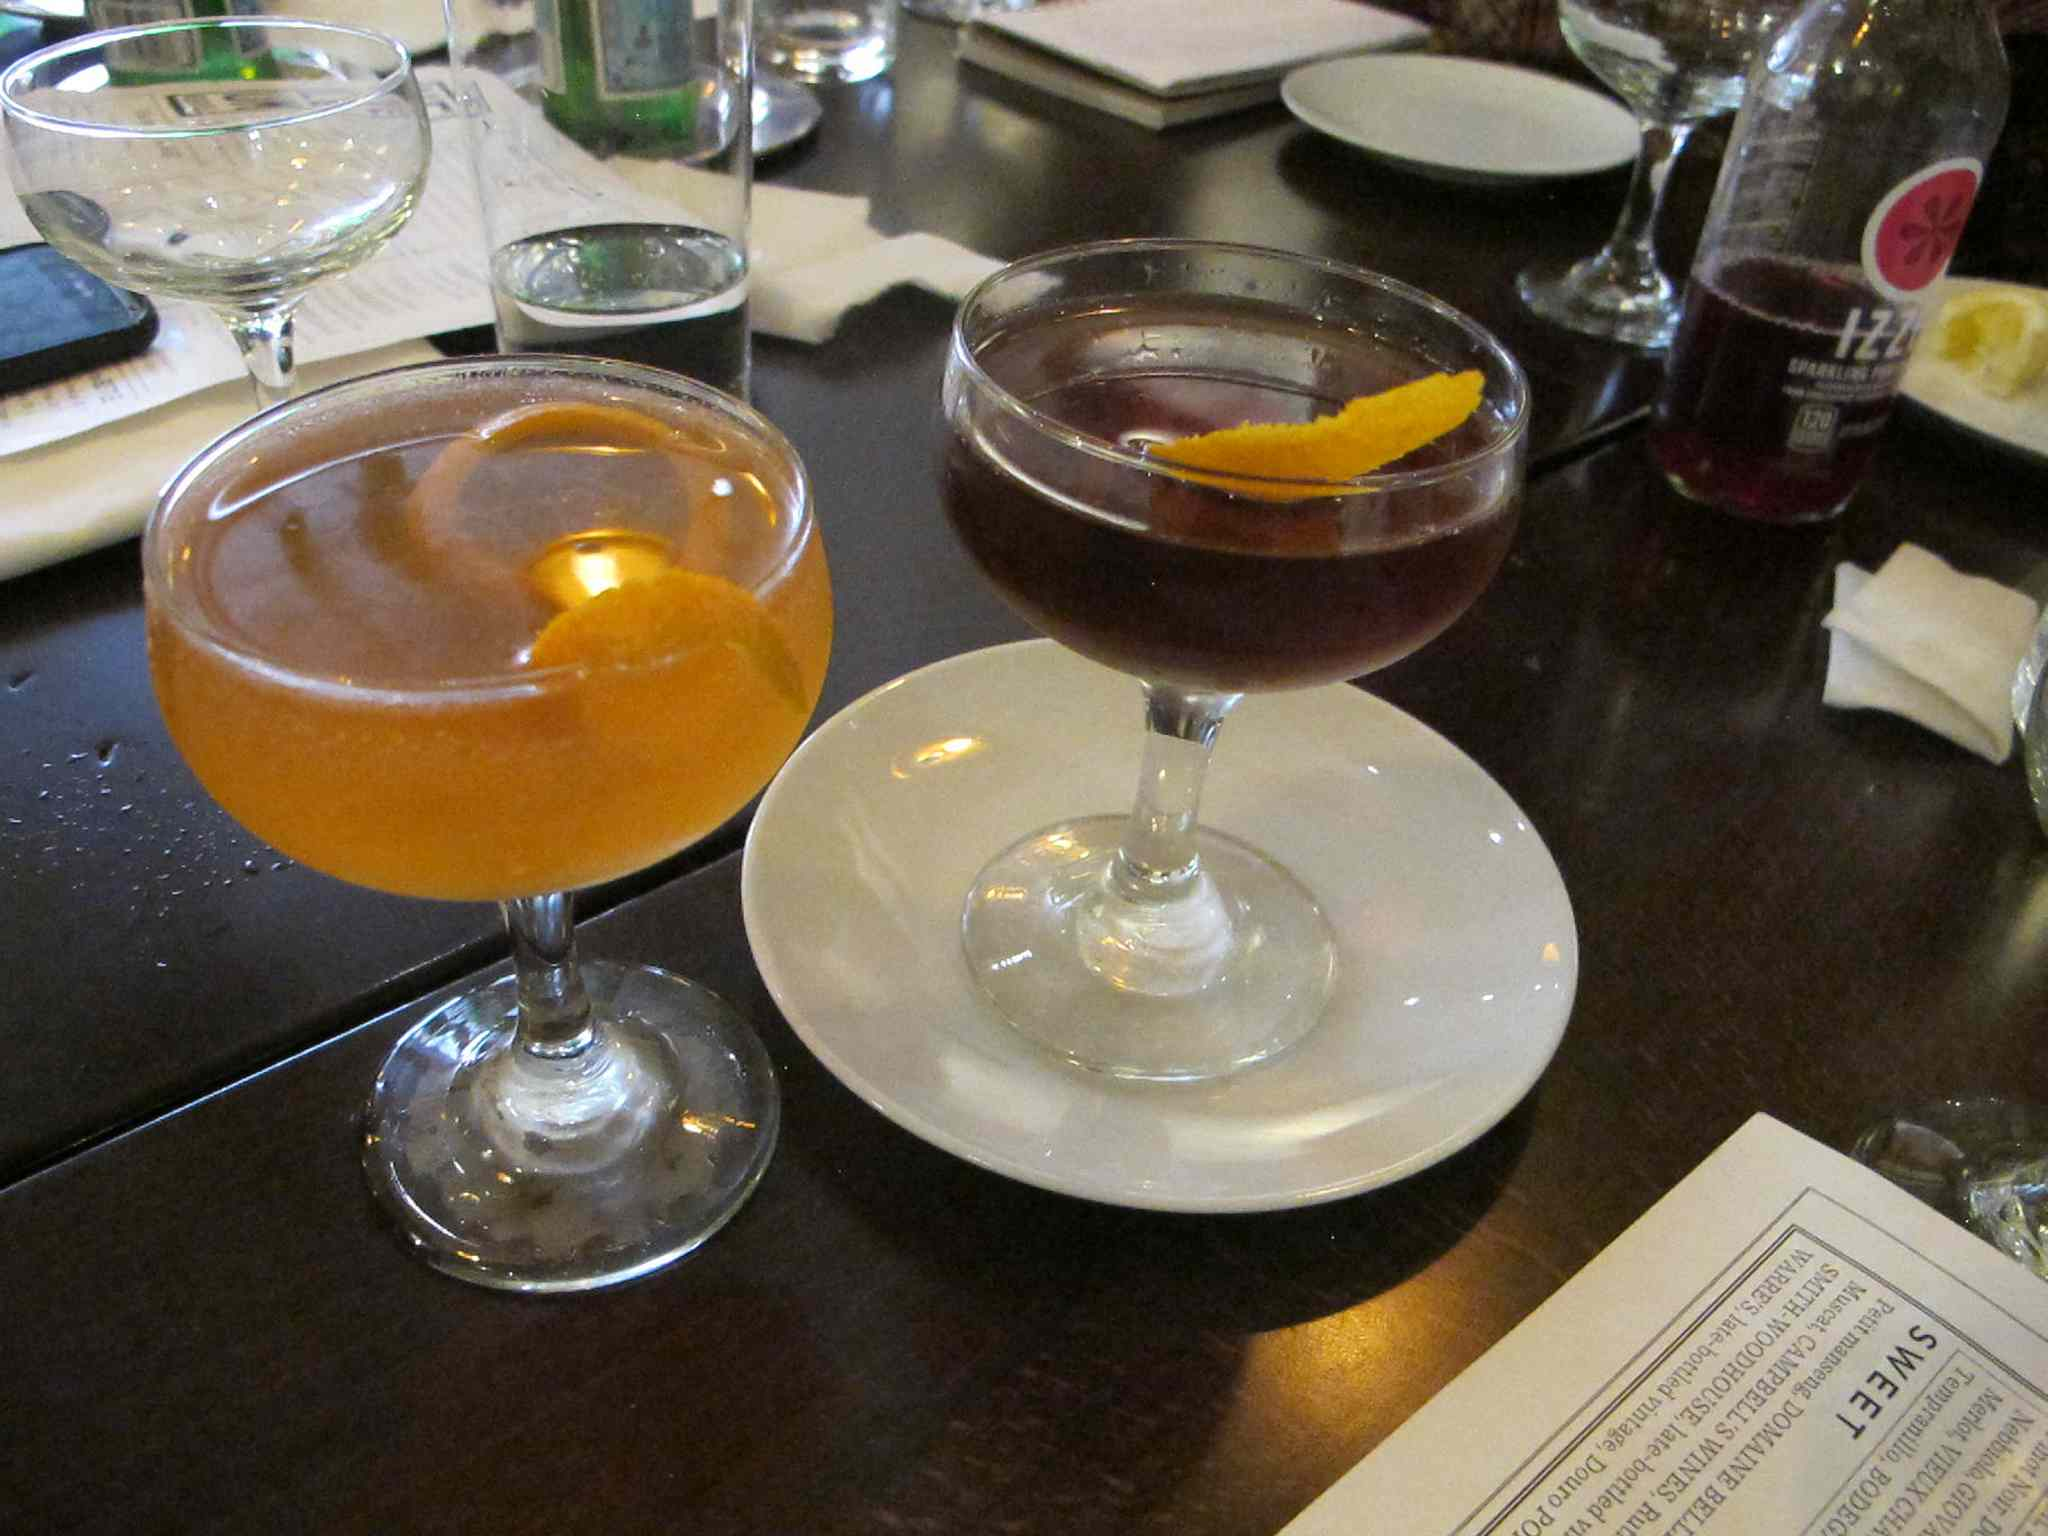 Cocktails at Vellum.